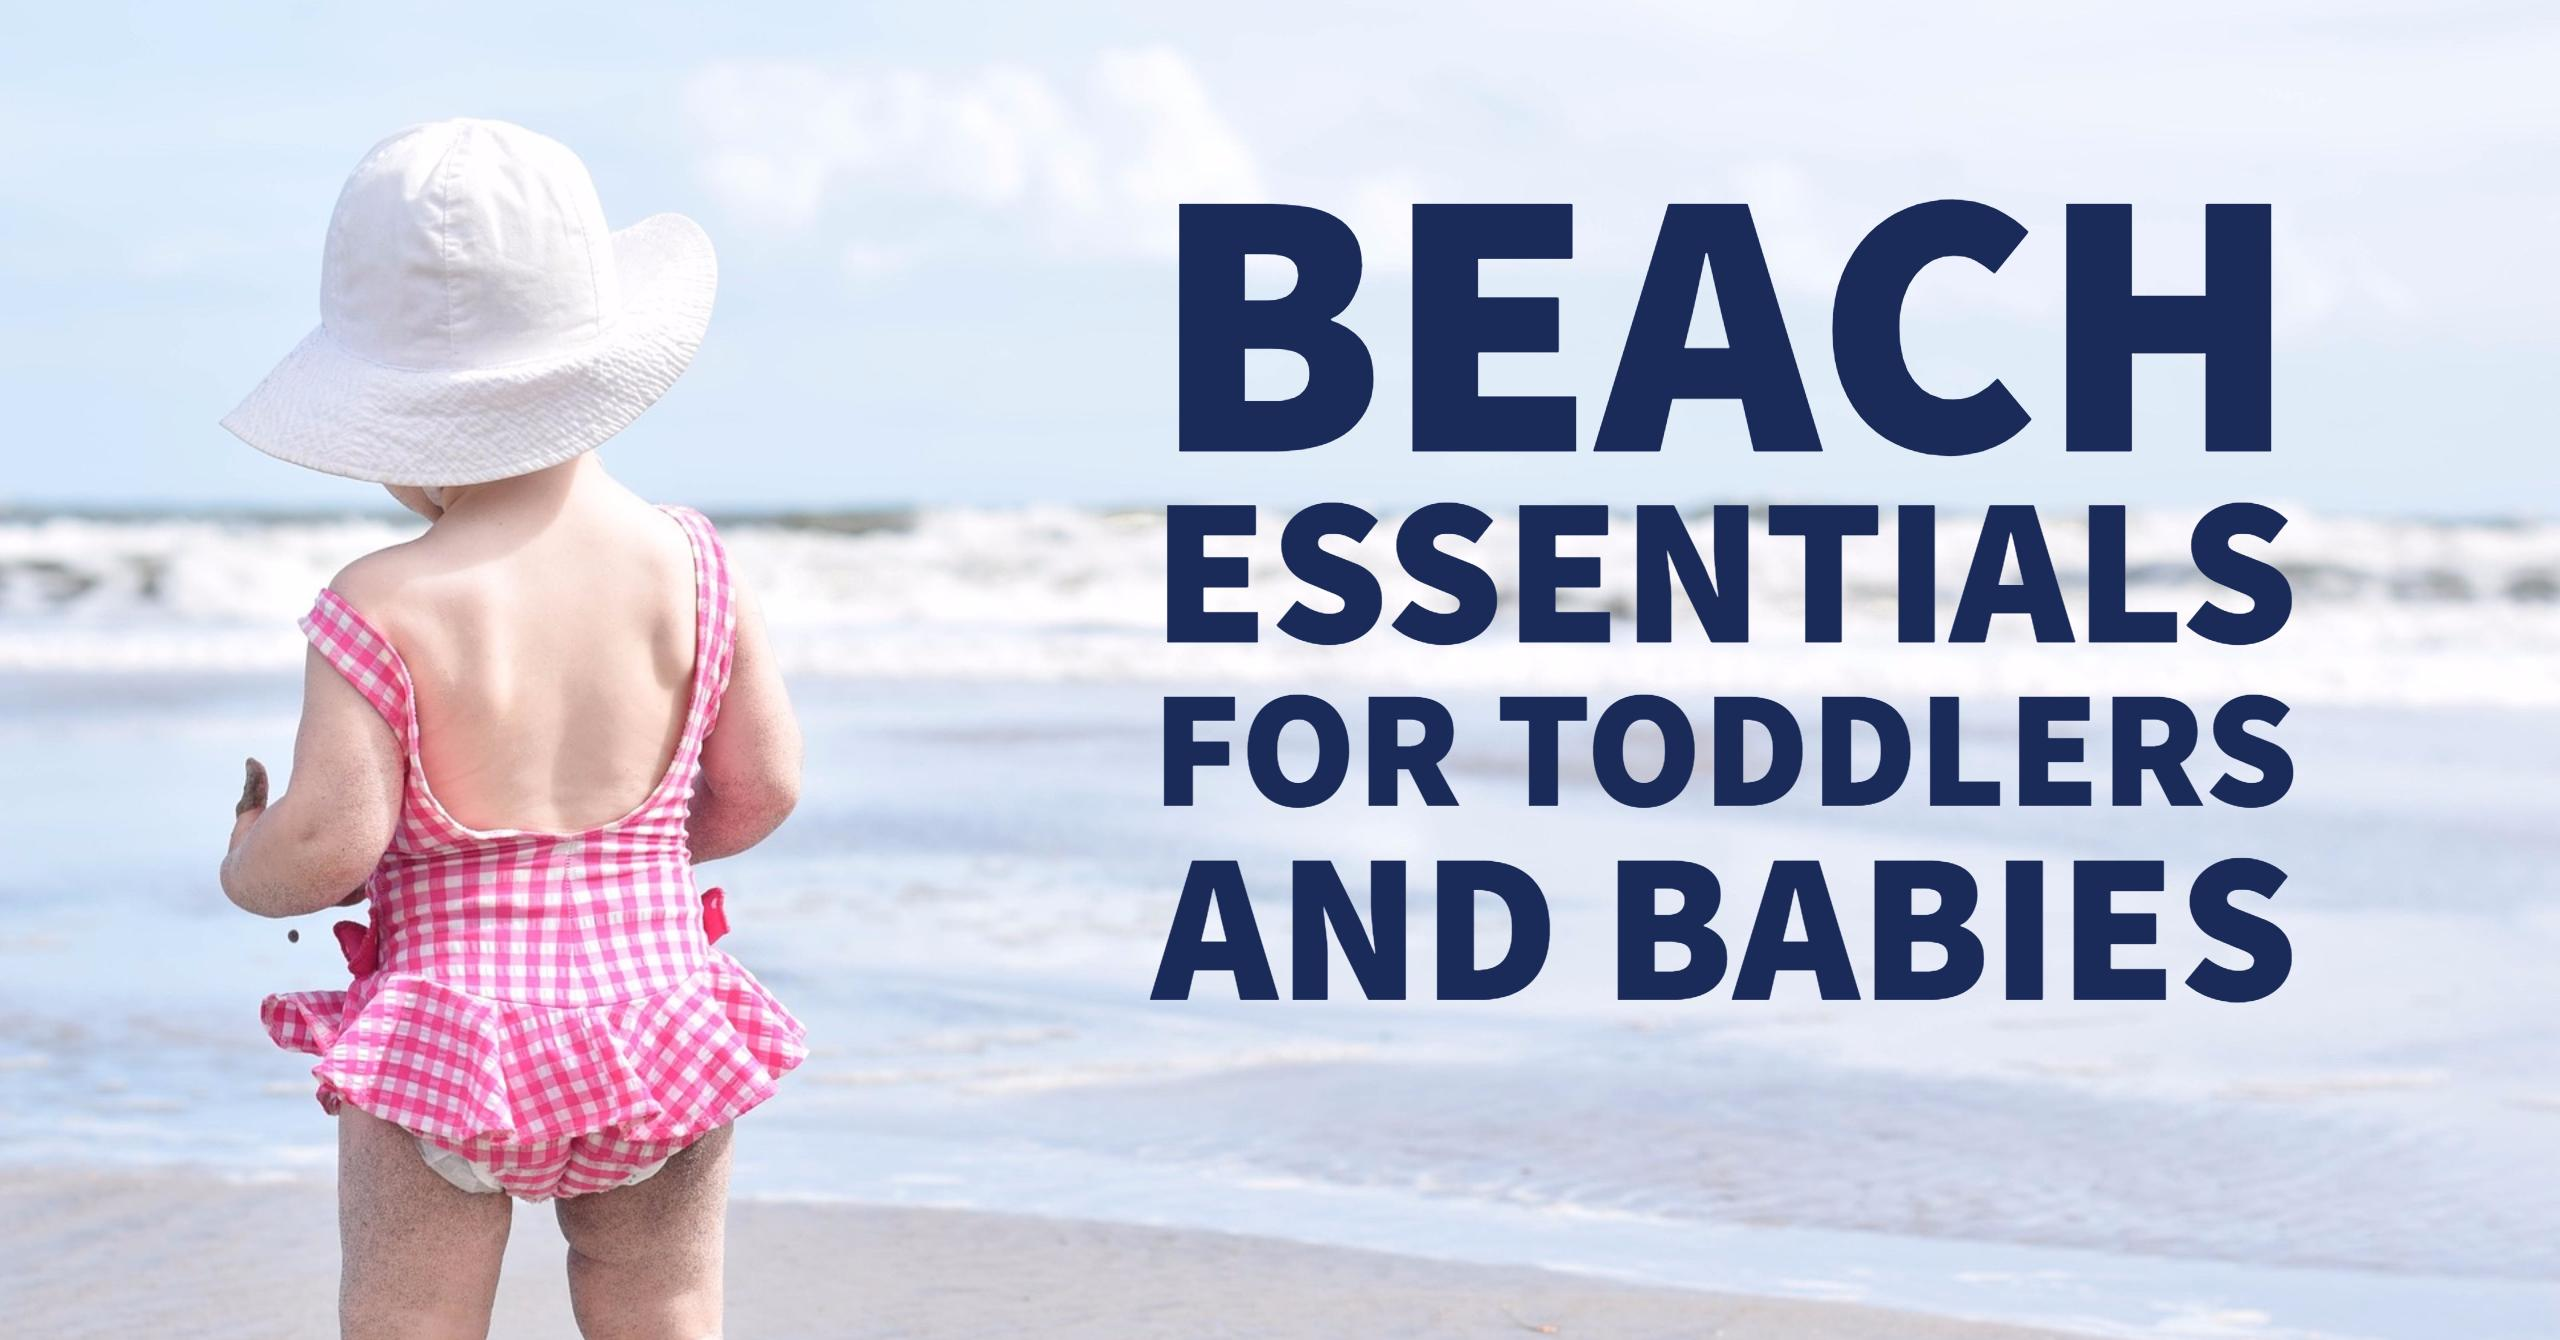 Beach Essentials for Toddlers and Babies